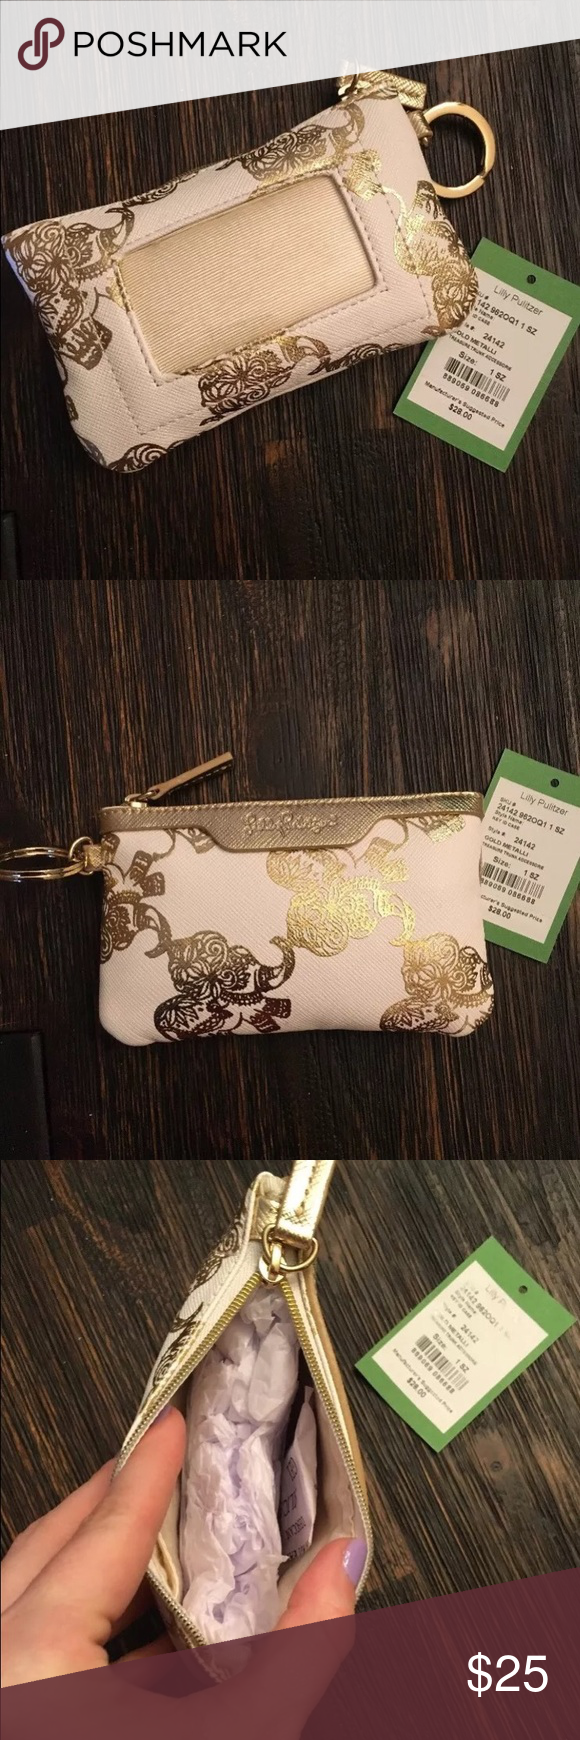 Lilly pulitzer key id wallet key card holder key and boho lilly pulitzer key id wallet easter giftid negle Choice Image